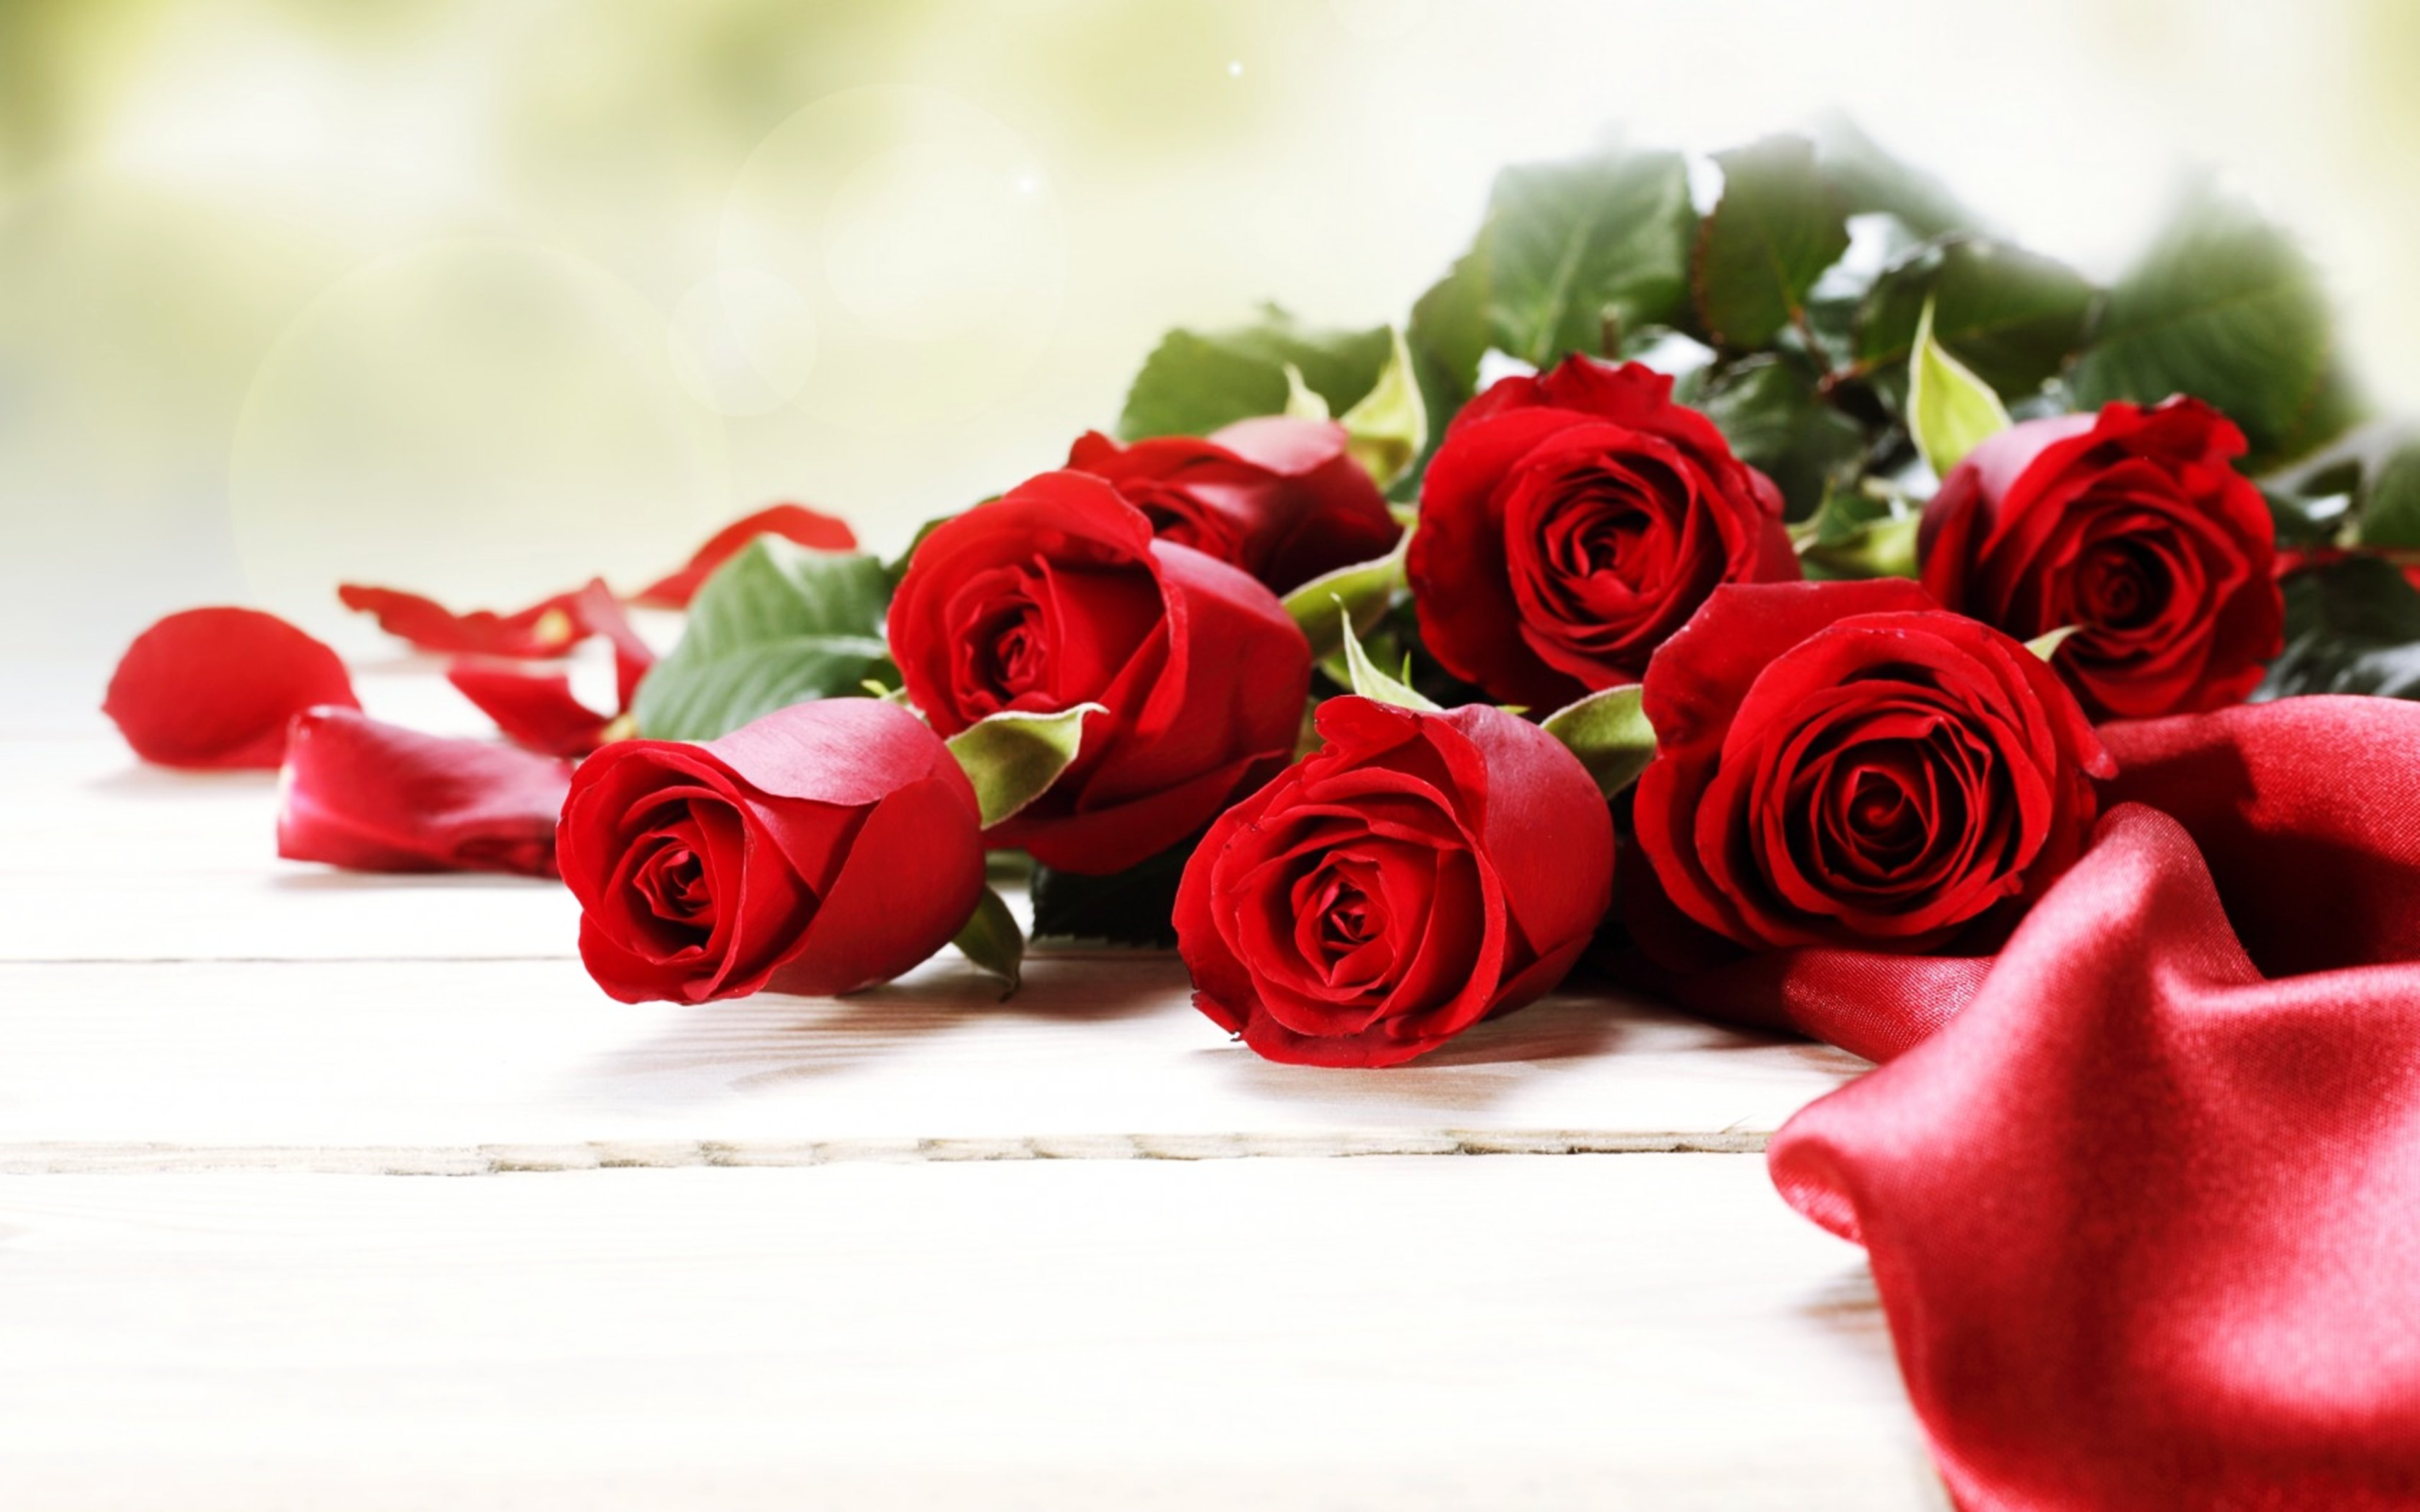 Roses Red Flowers Love Romance Emotions 4you Bouquet Spring